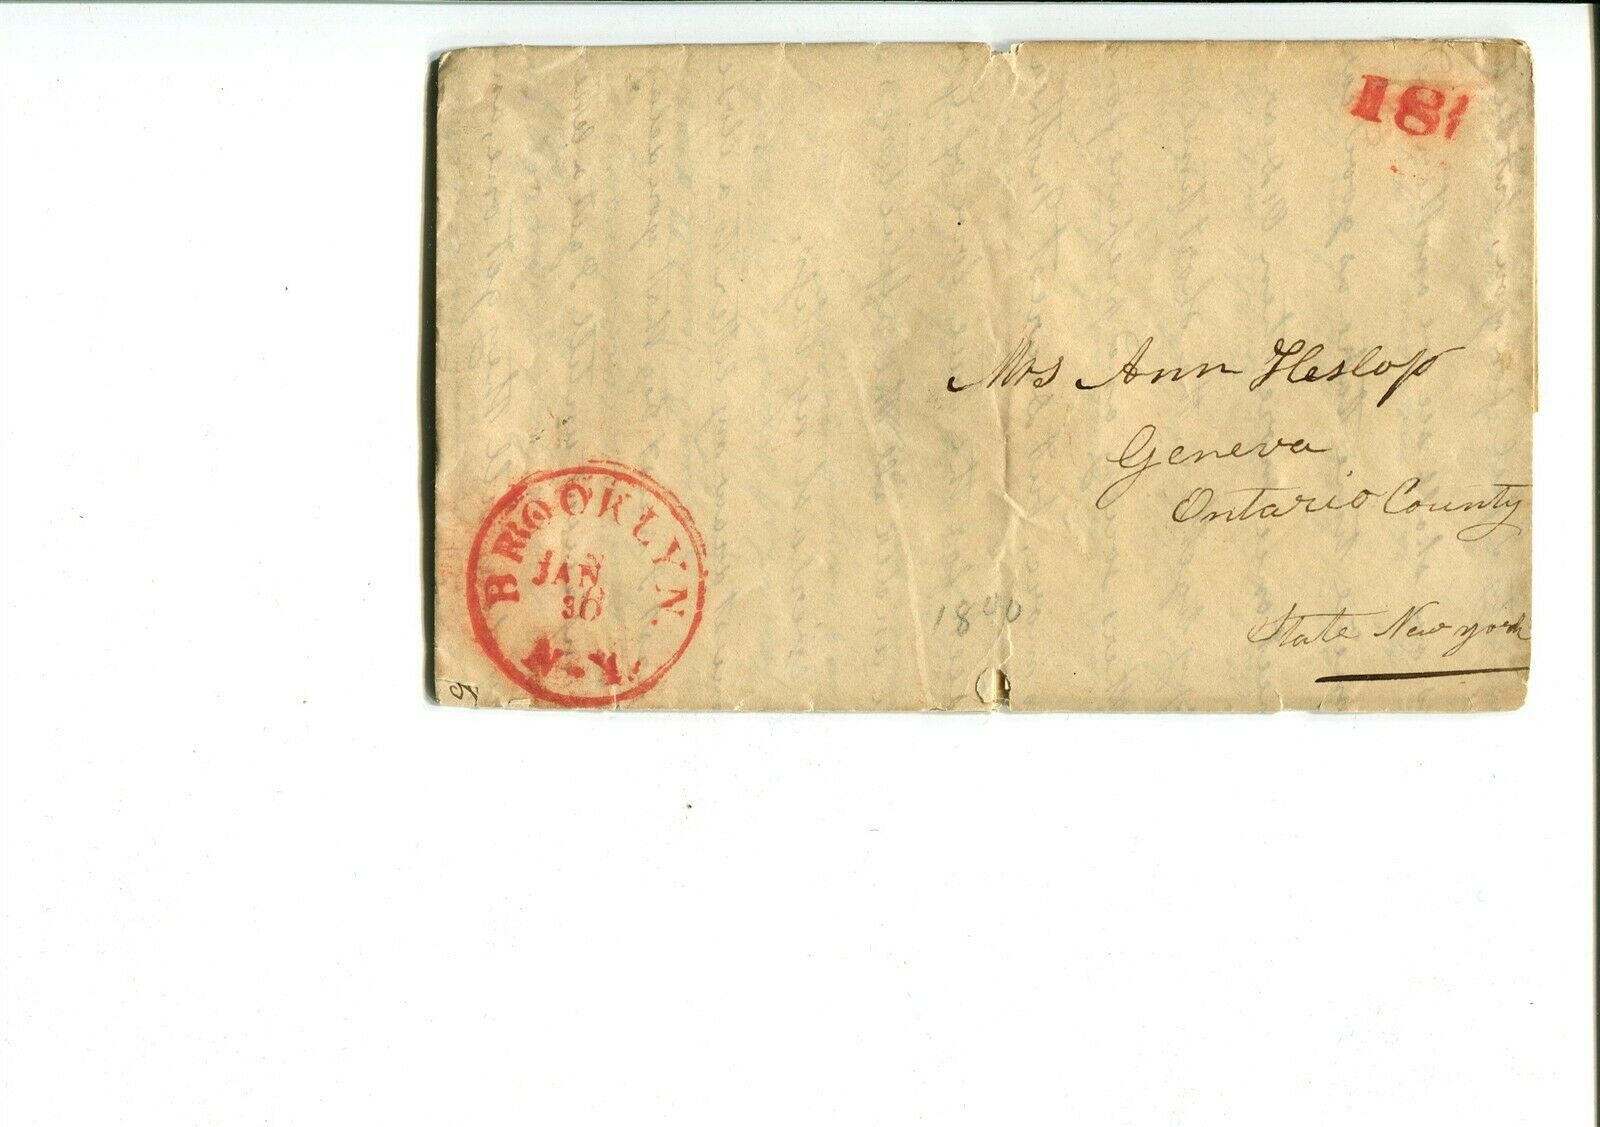 GP GOLDPATH US STAMPLESS COVER 1840,W/LETTER, BROOKLYN, NY. CV747 P12 - $15.50